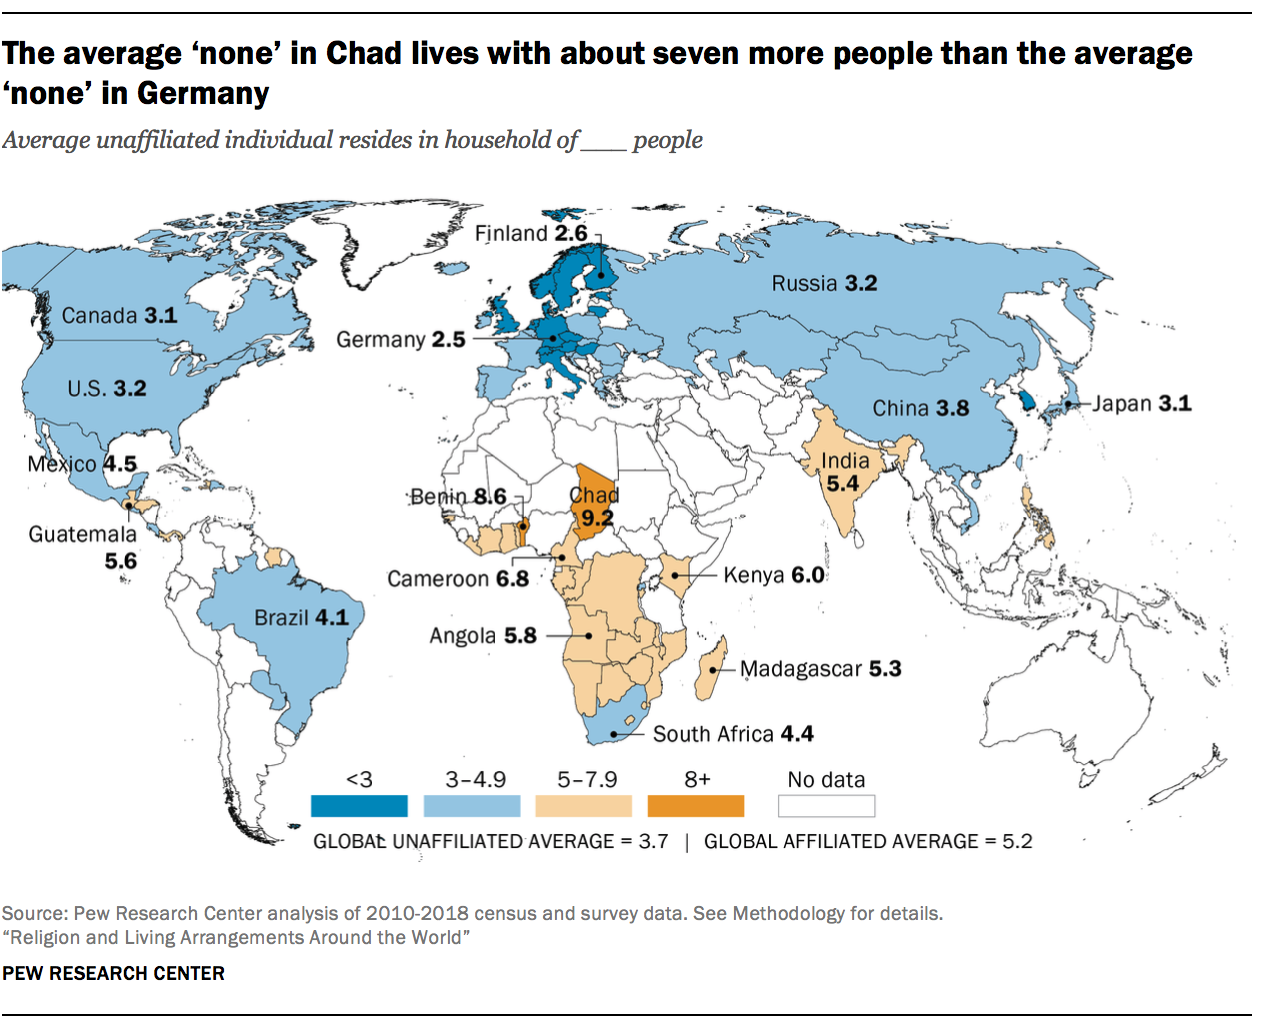 The average 'none' in Chad lives with about seven more people than the average 'none' in Germany